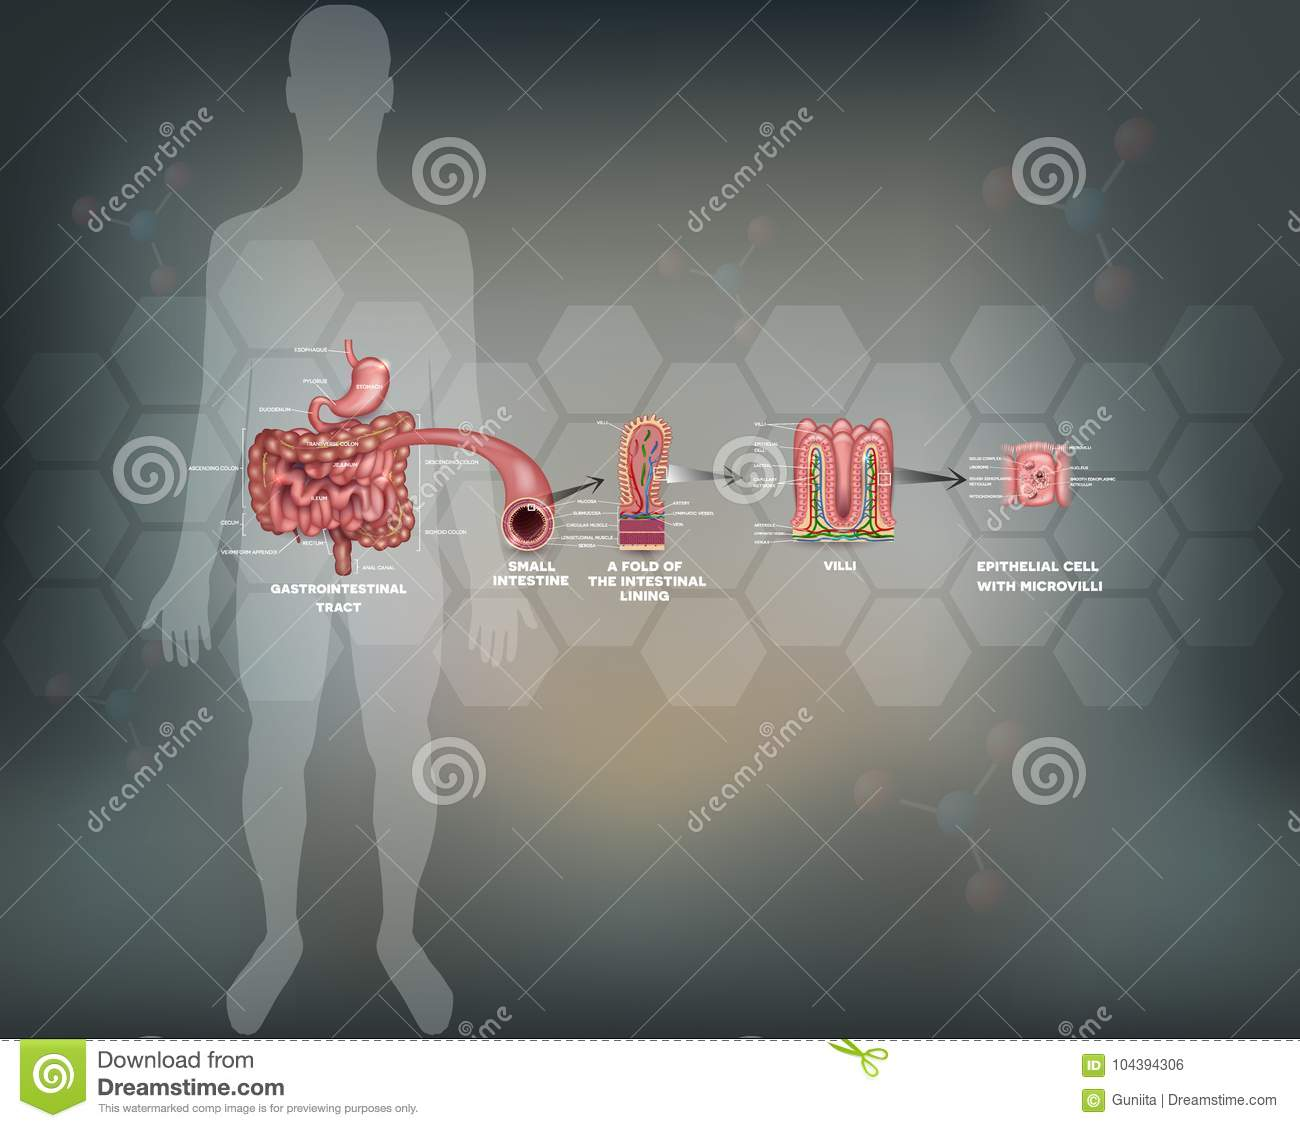 Stomach and colon anatomy stock vector. Illustration of body - 104394306